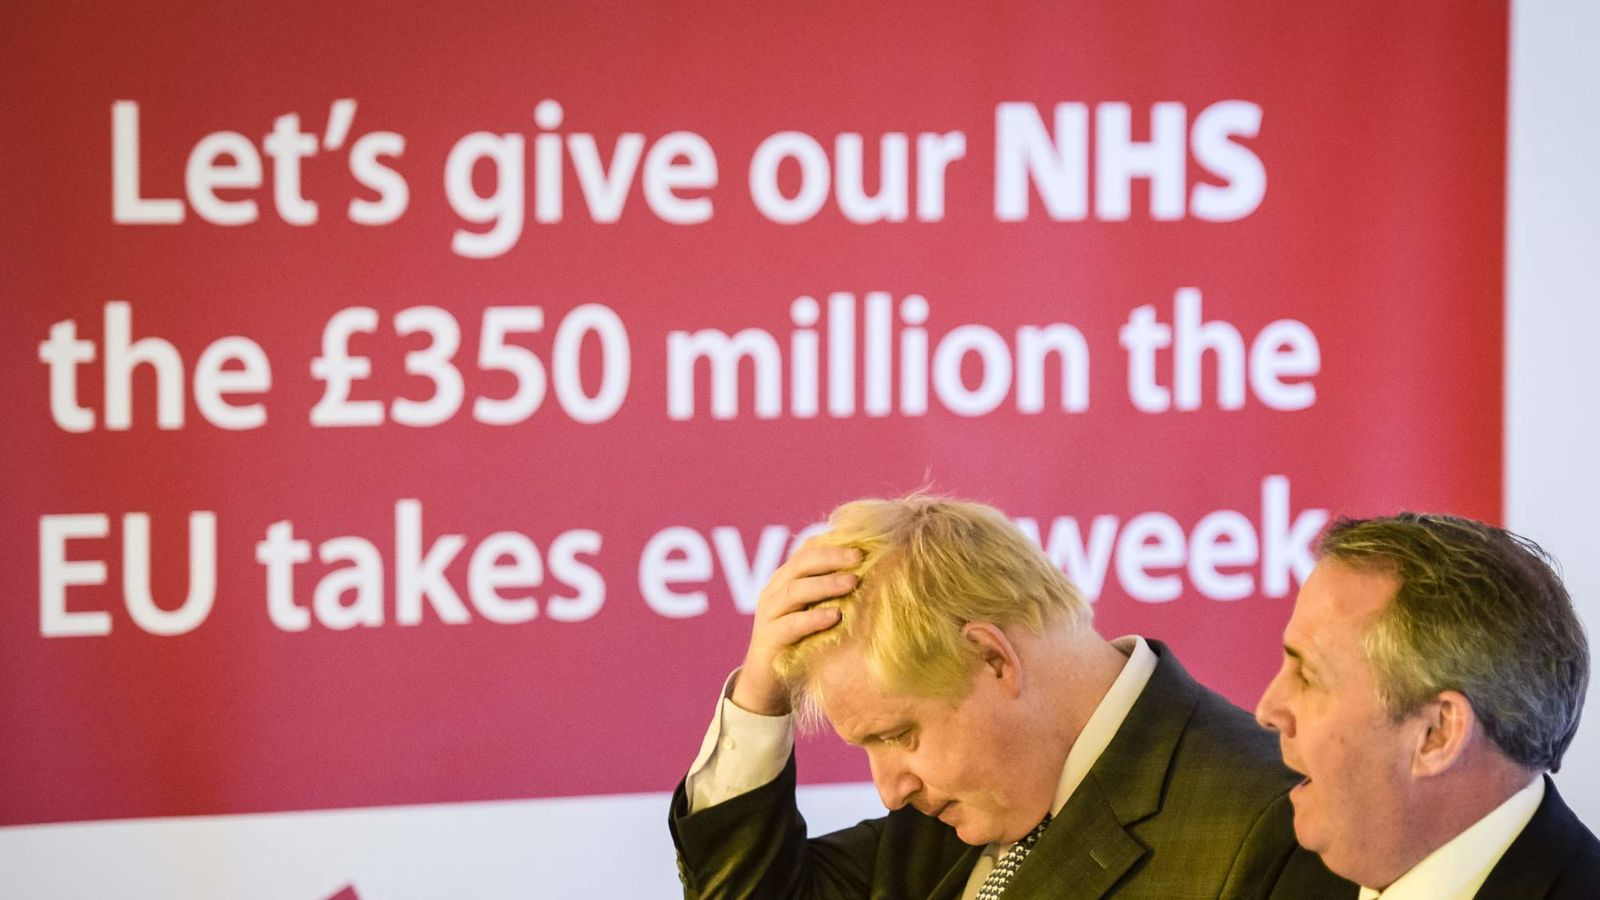 The two versions of the £350 million for the NHS slogan